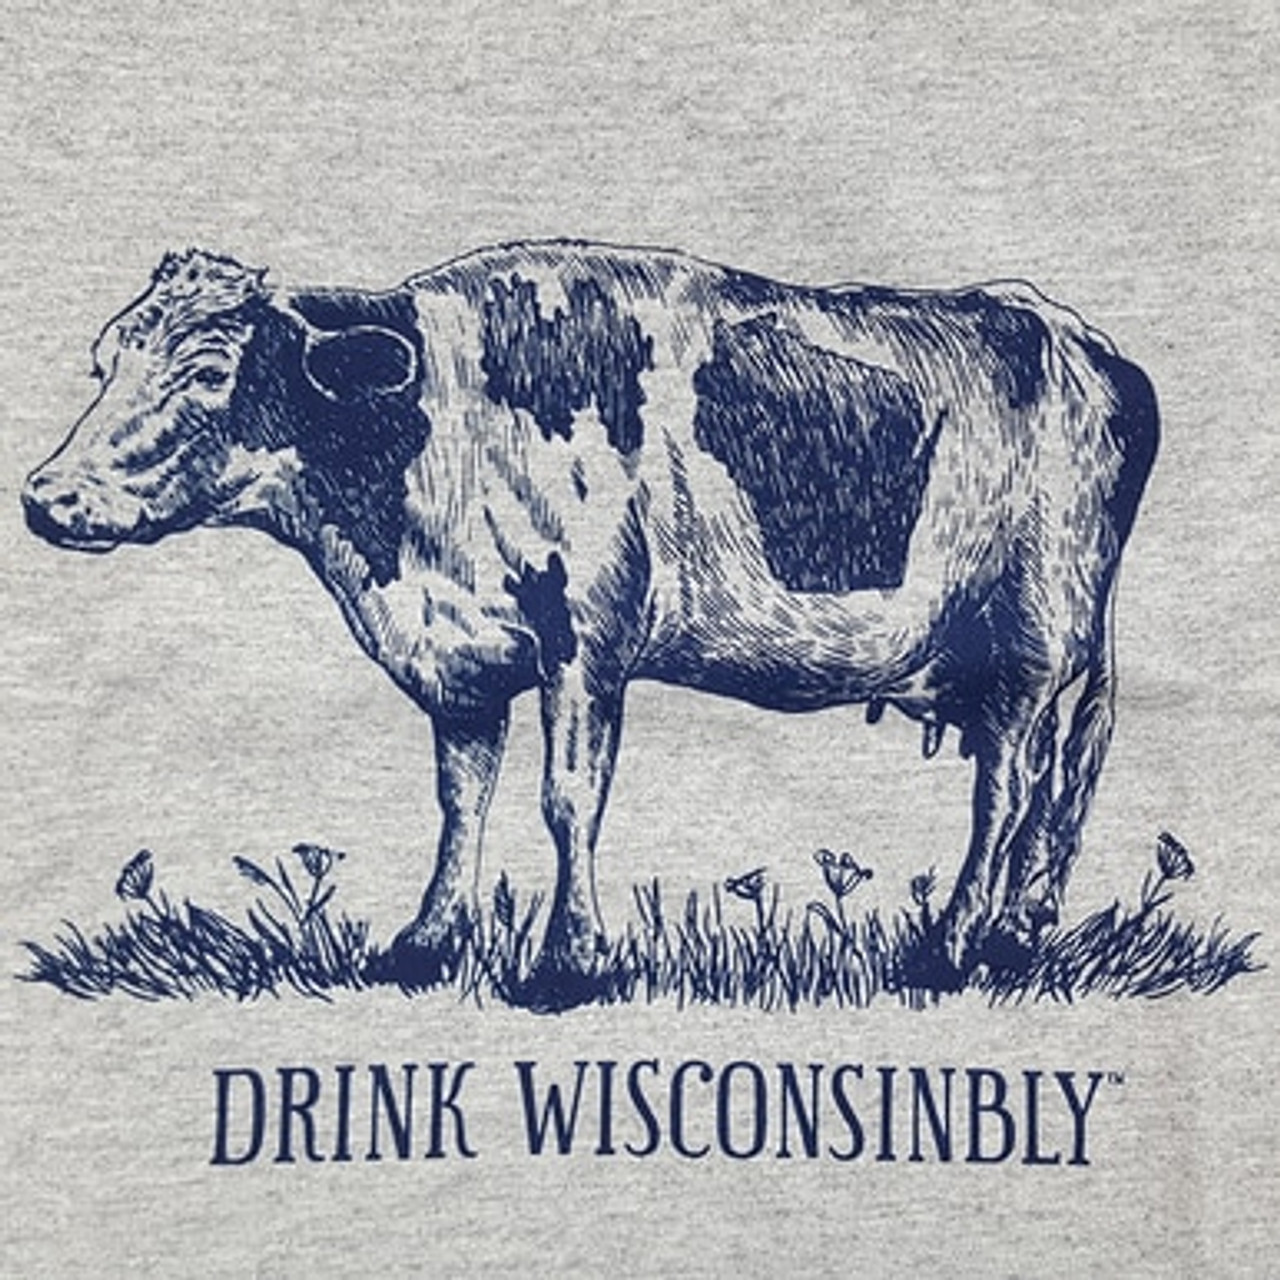 Drink Wisconsibly Cow T-Shirt on WisconsinMade Artisan Collective